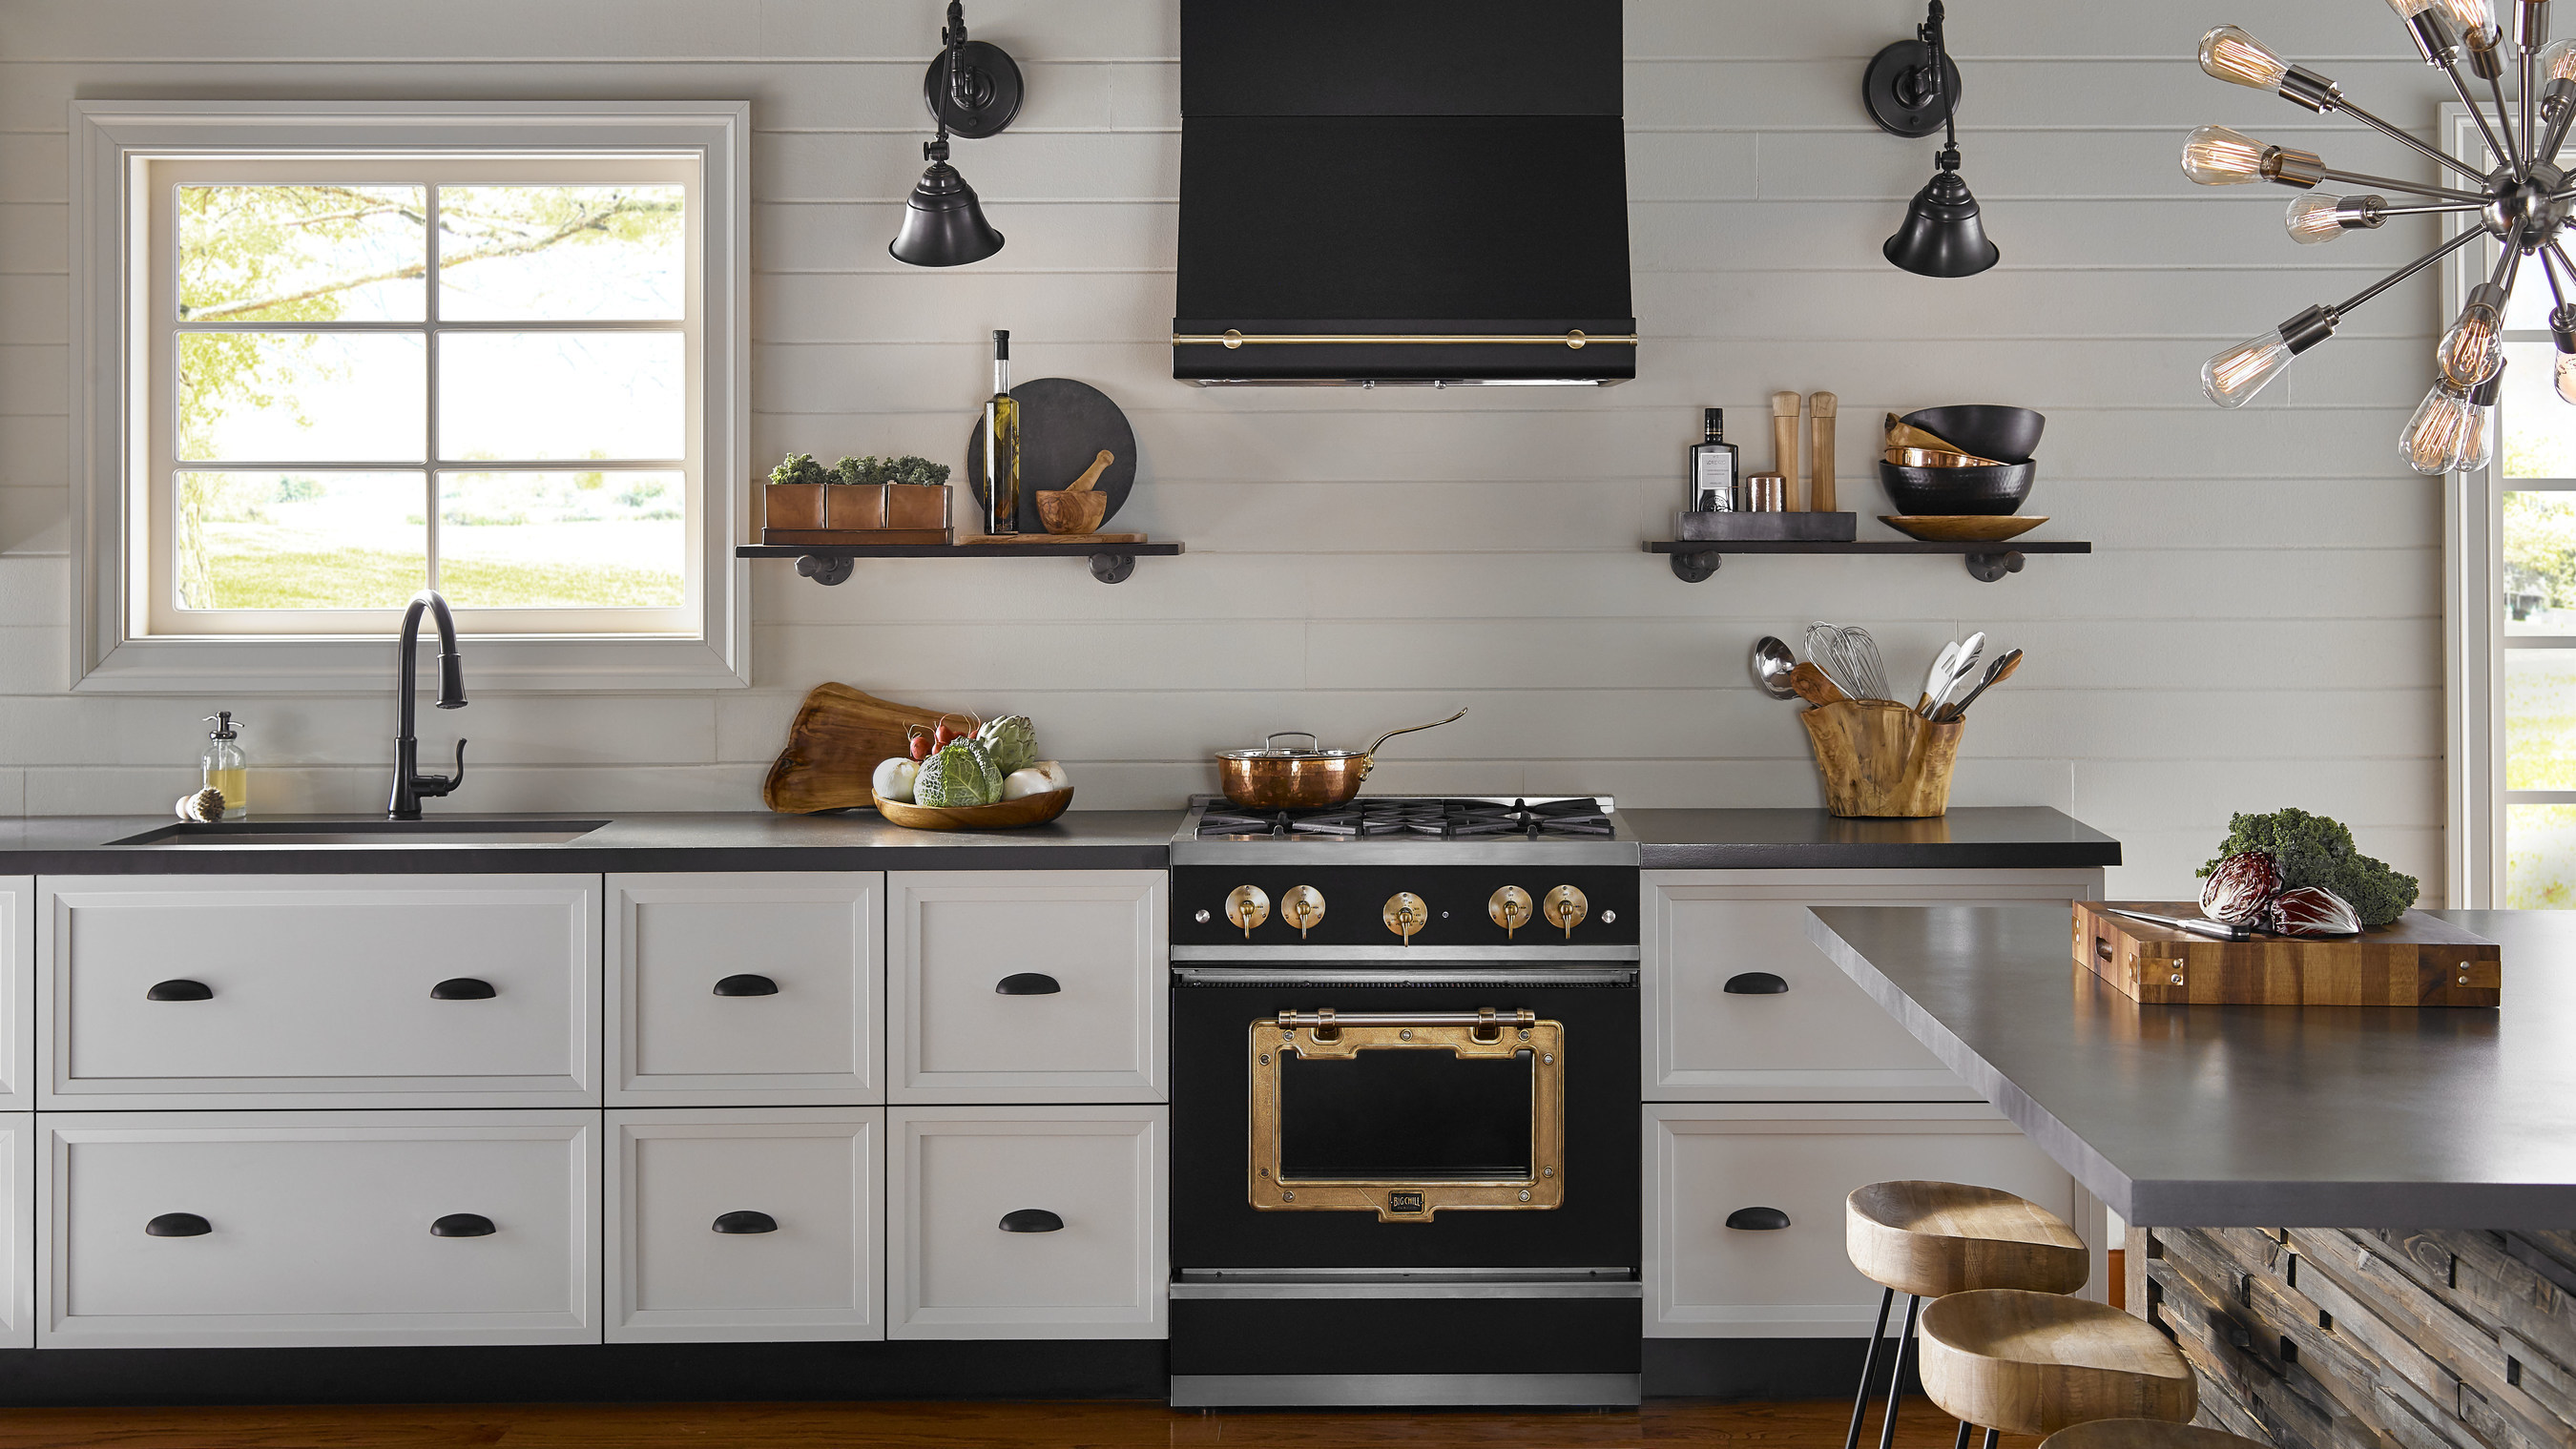 Big Chill Ushers in a New Era of Style to the Kitchen: Introducing the Big Chill Classic, Industrial Style, American by Design